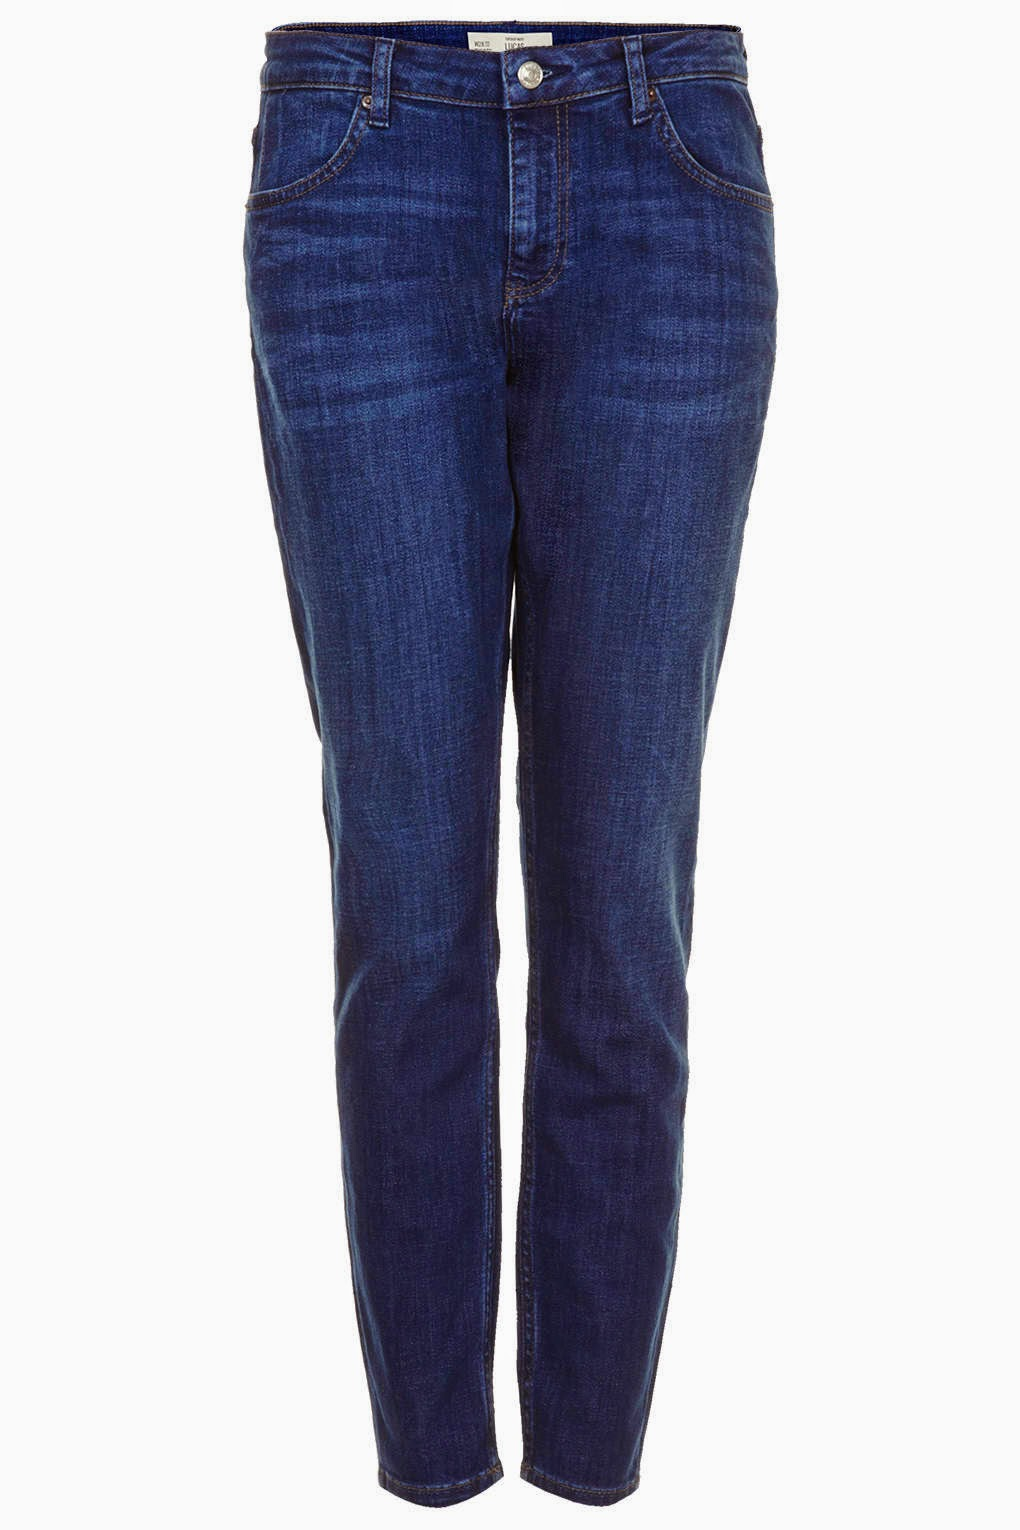 topshop lucas jeans review